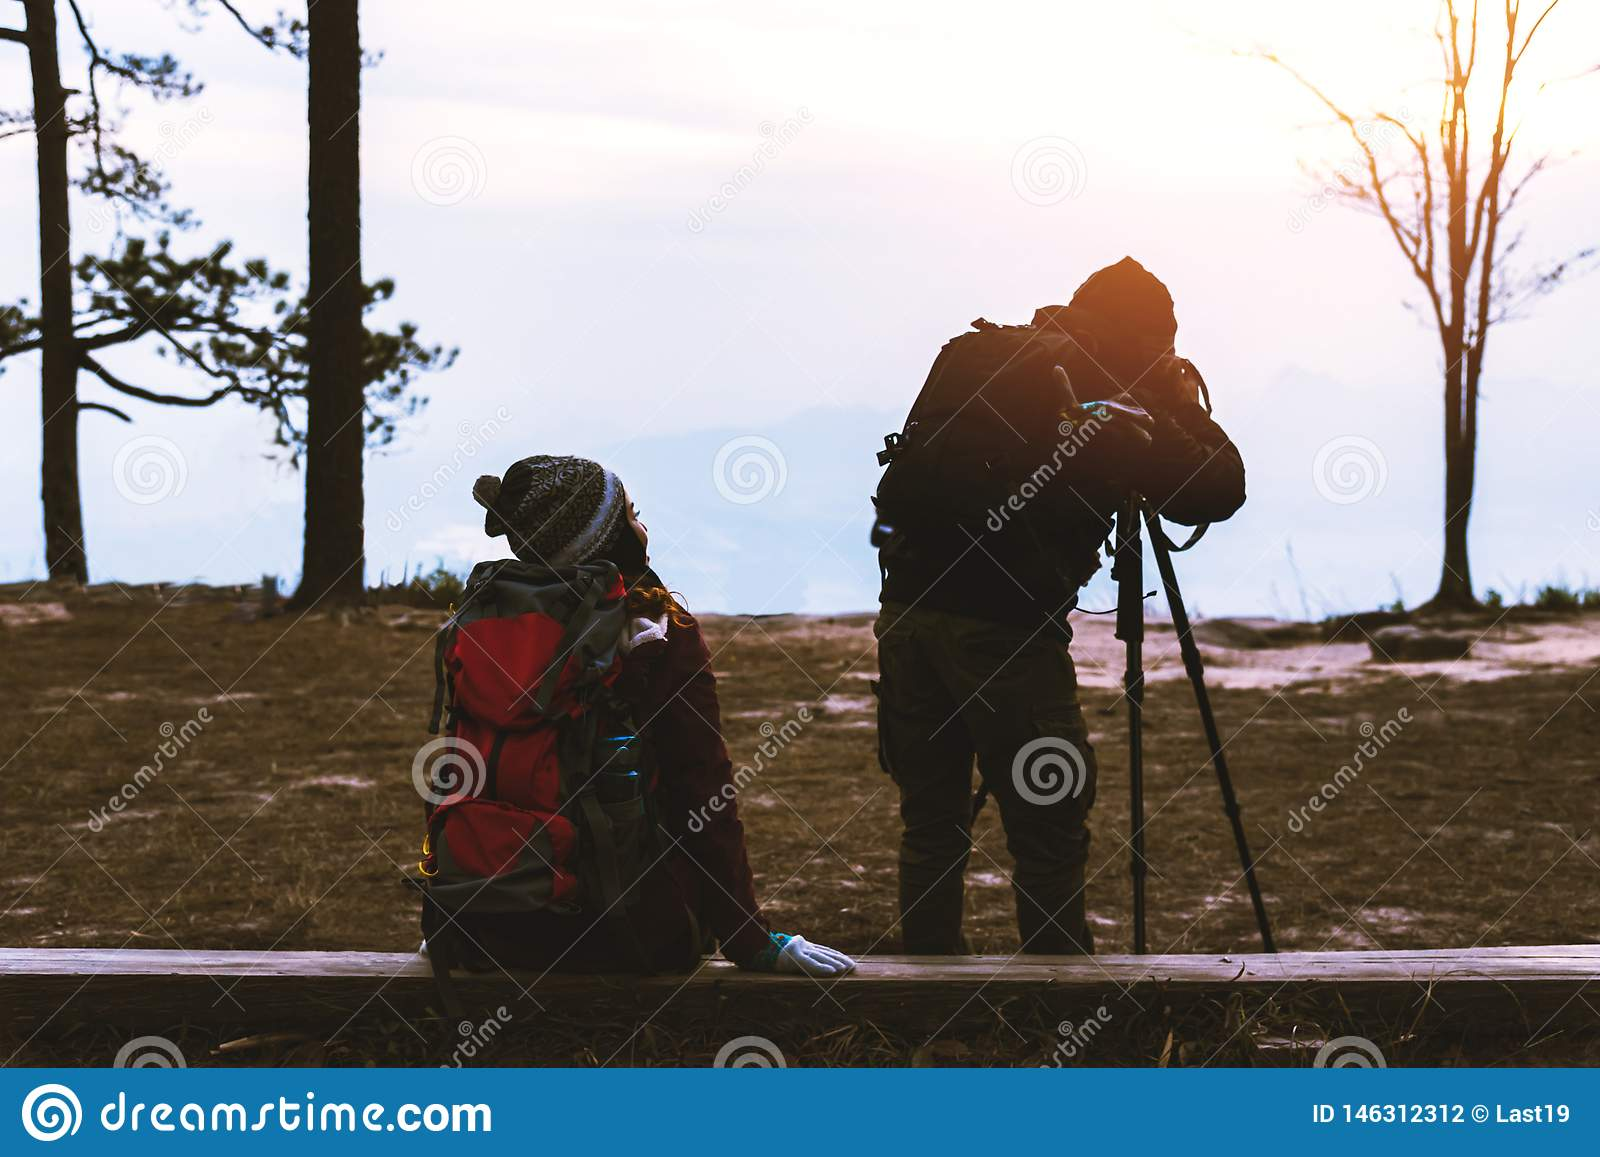 Photographer lover women and men asians travel relax in the holiday. Photograph mountain landscapes atmosphere in the morning. In